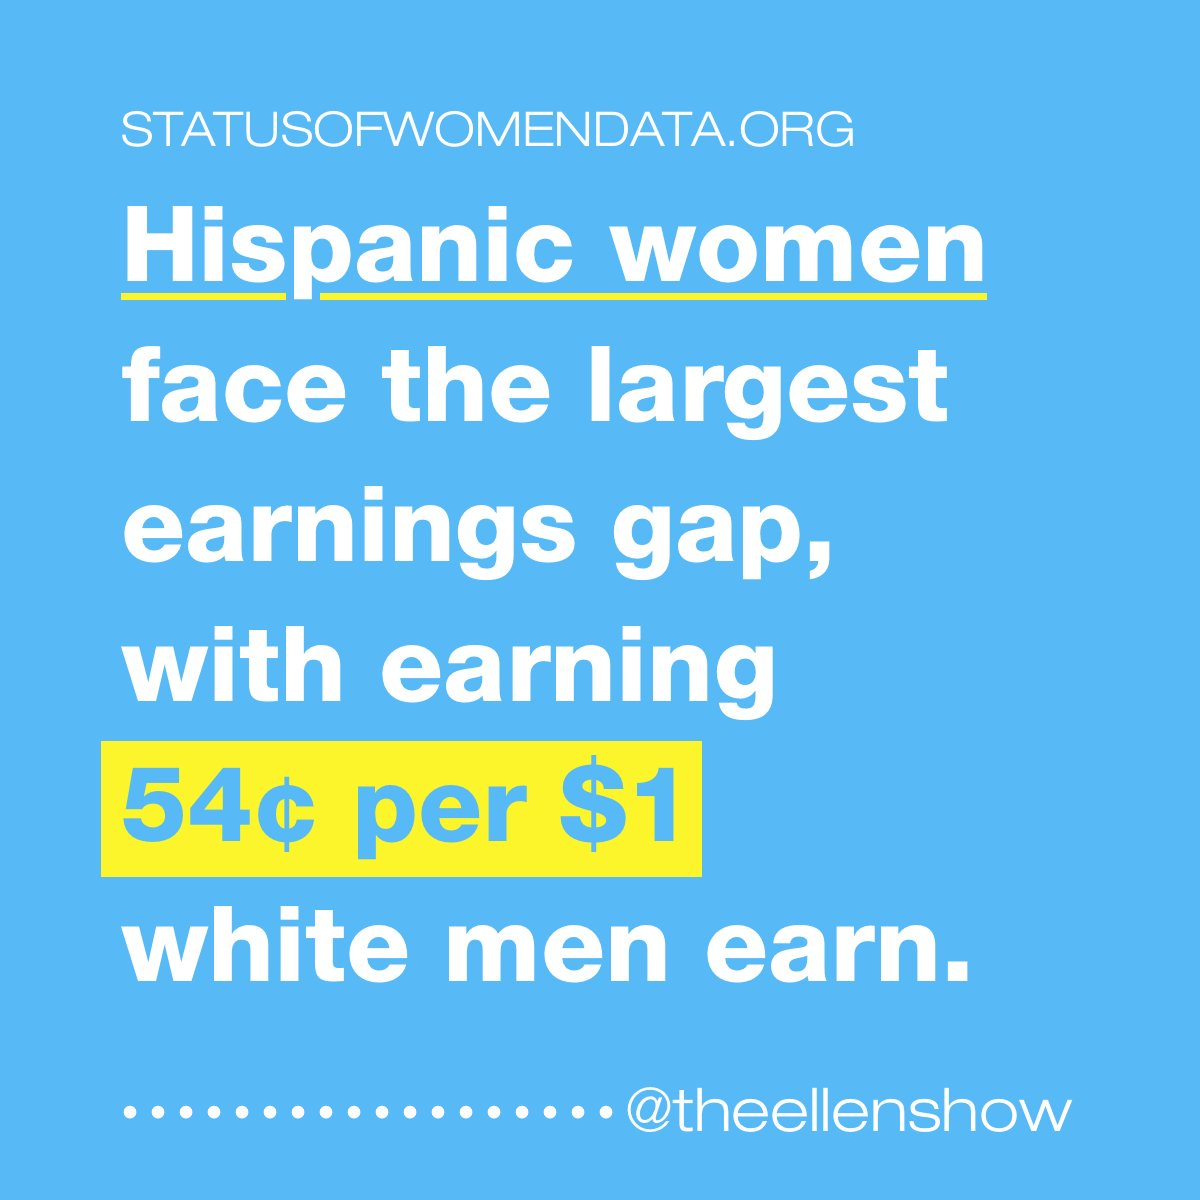 Today is #EqualPayDay . Can you imagine how you would feel if any of these facts applied to you?